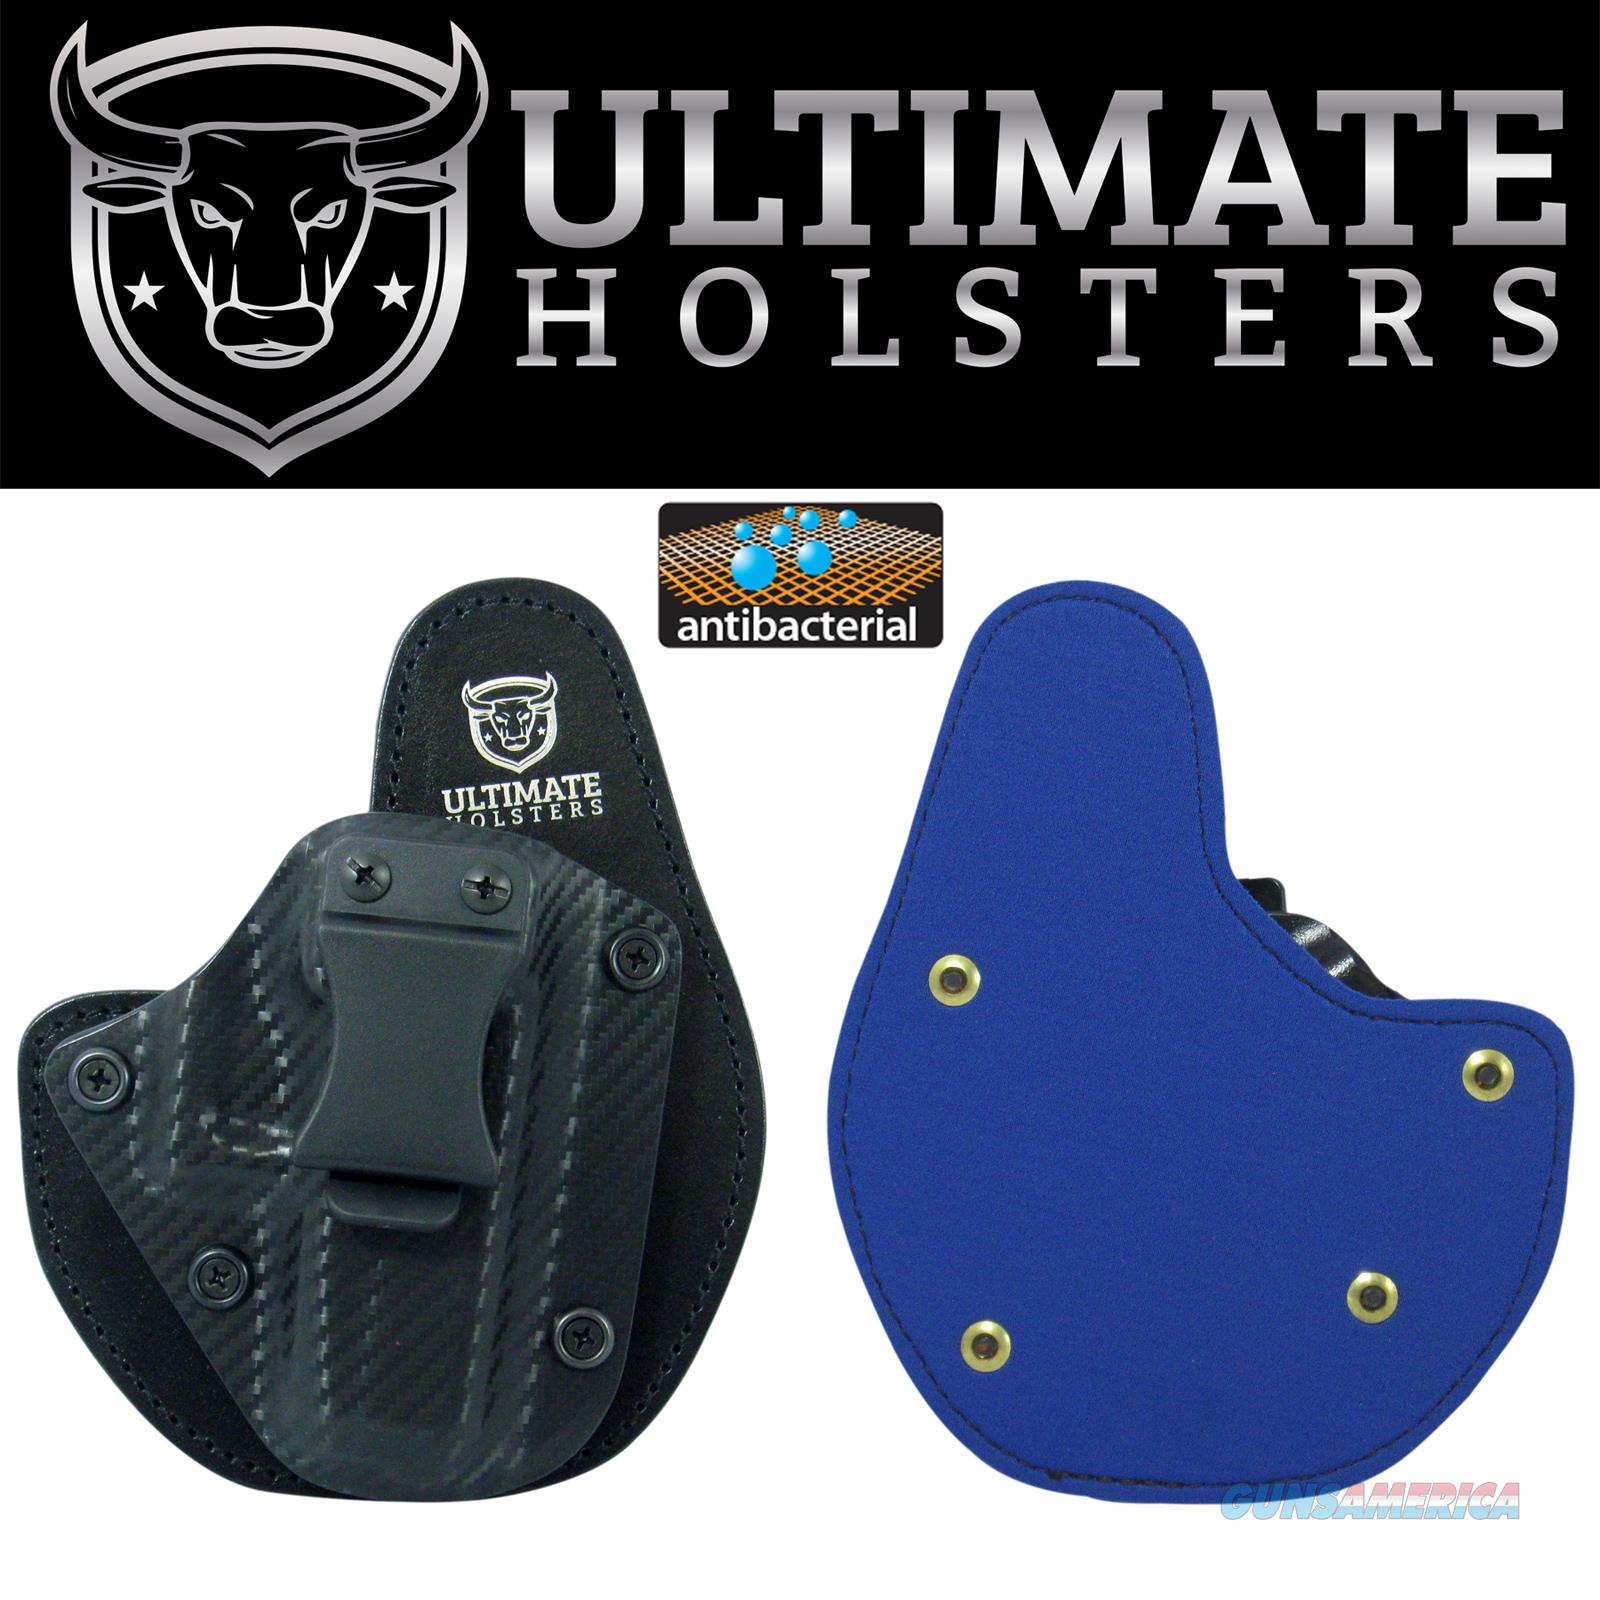 HK P30 Cloud Tuck Rapid Hybrid Holster- Most Comfortable Holster- Antimicrobial Padding   Non-Guns > Holsters and Gunleather > Concealed Carry